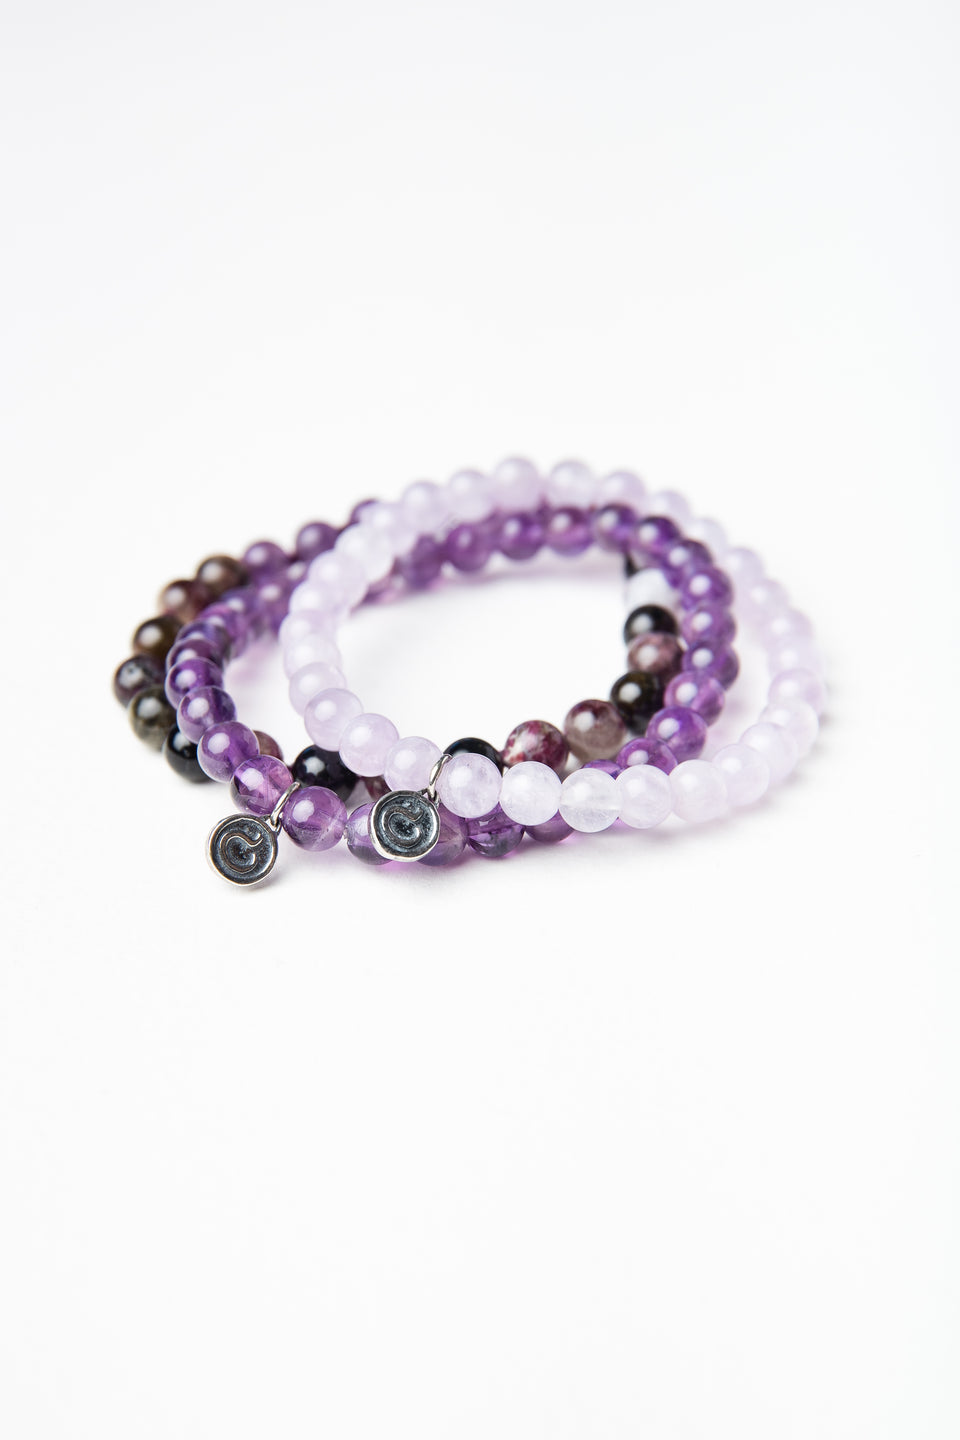 lightbox bracelet product disciple purple stone clothed in